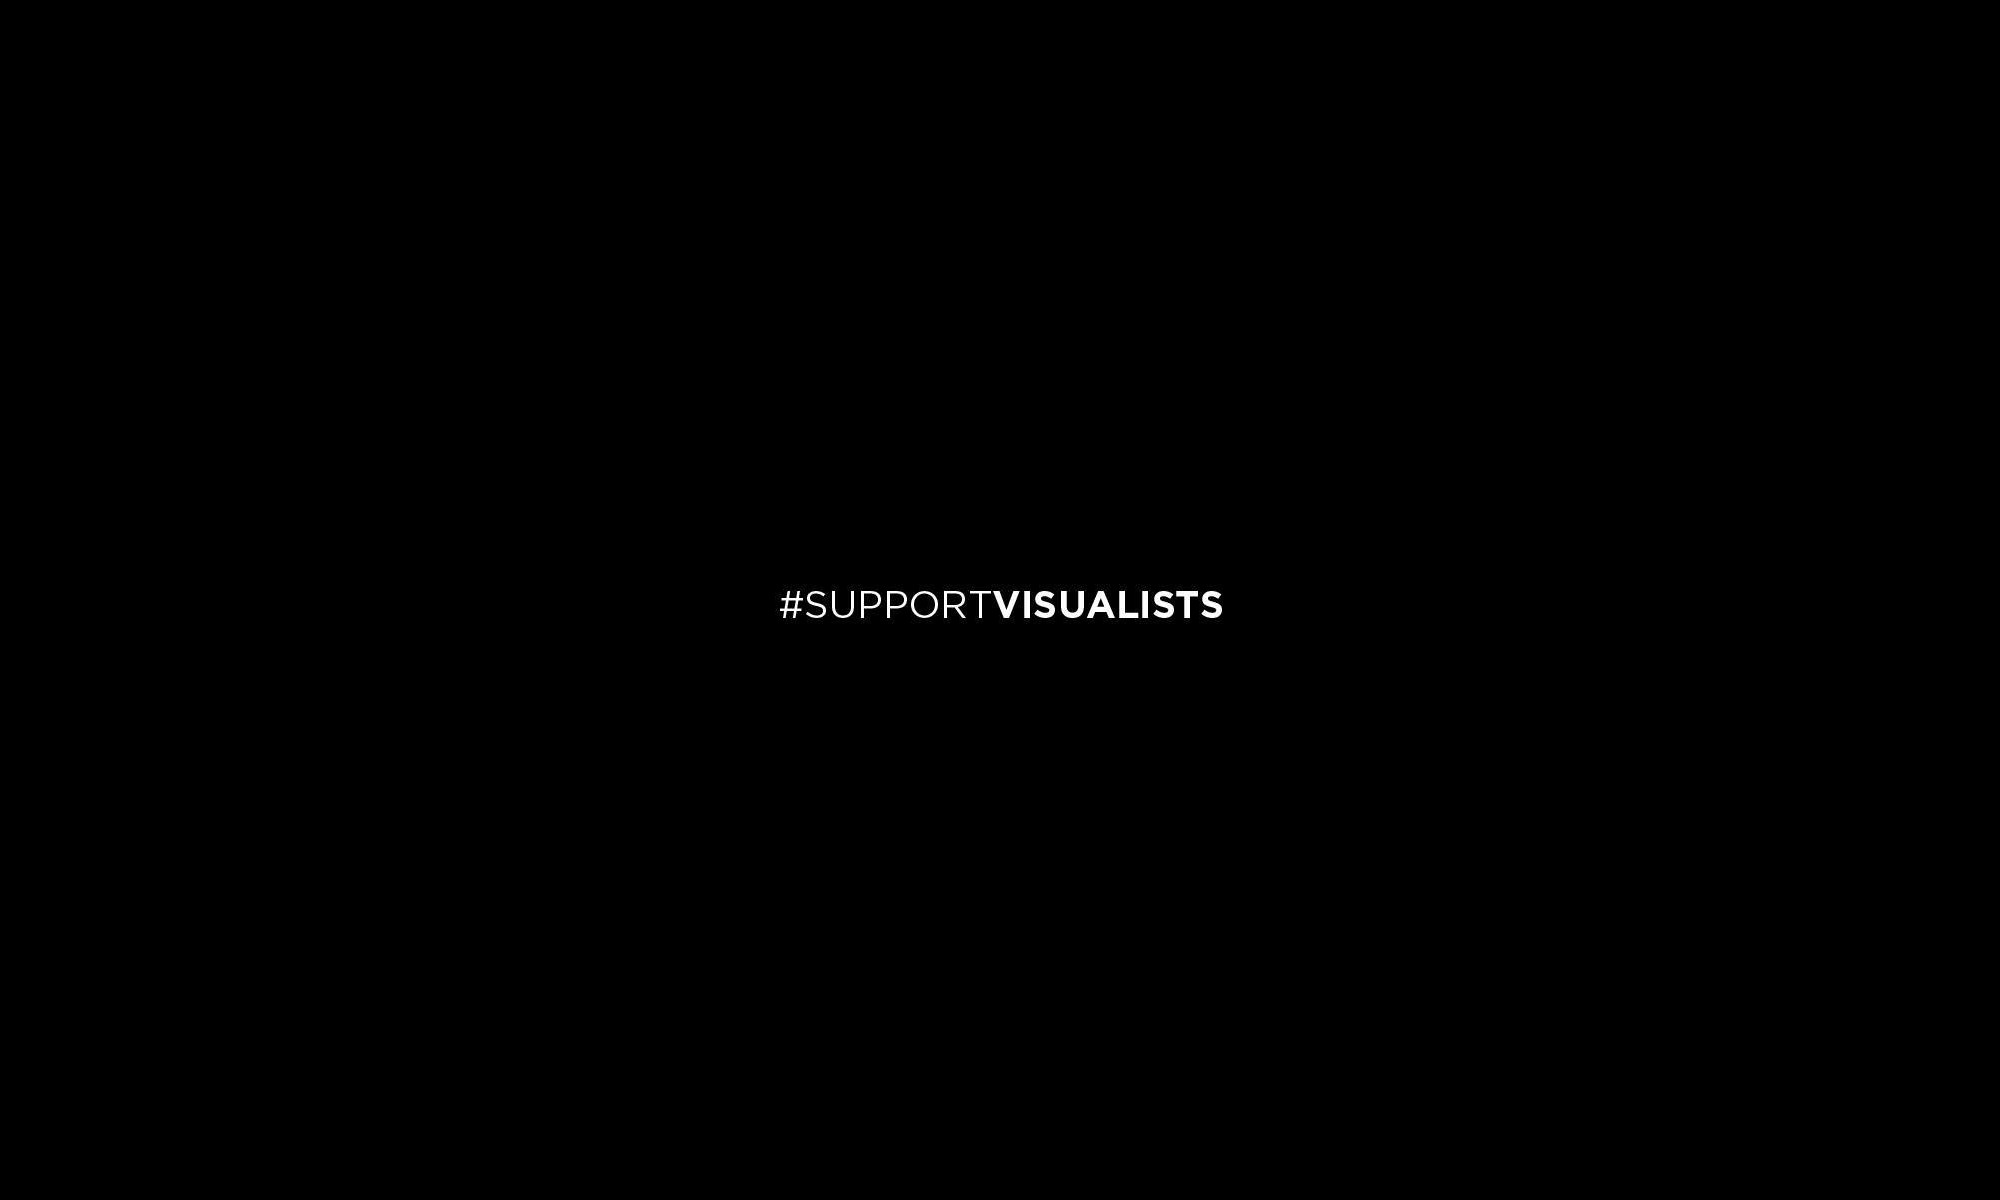 #supportvisualists